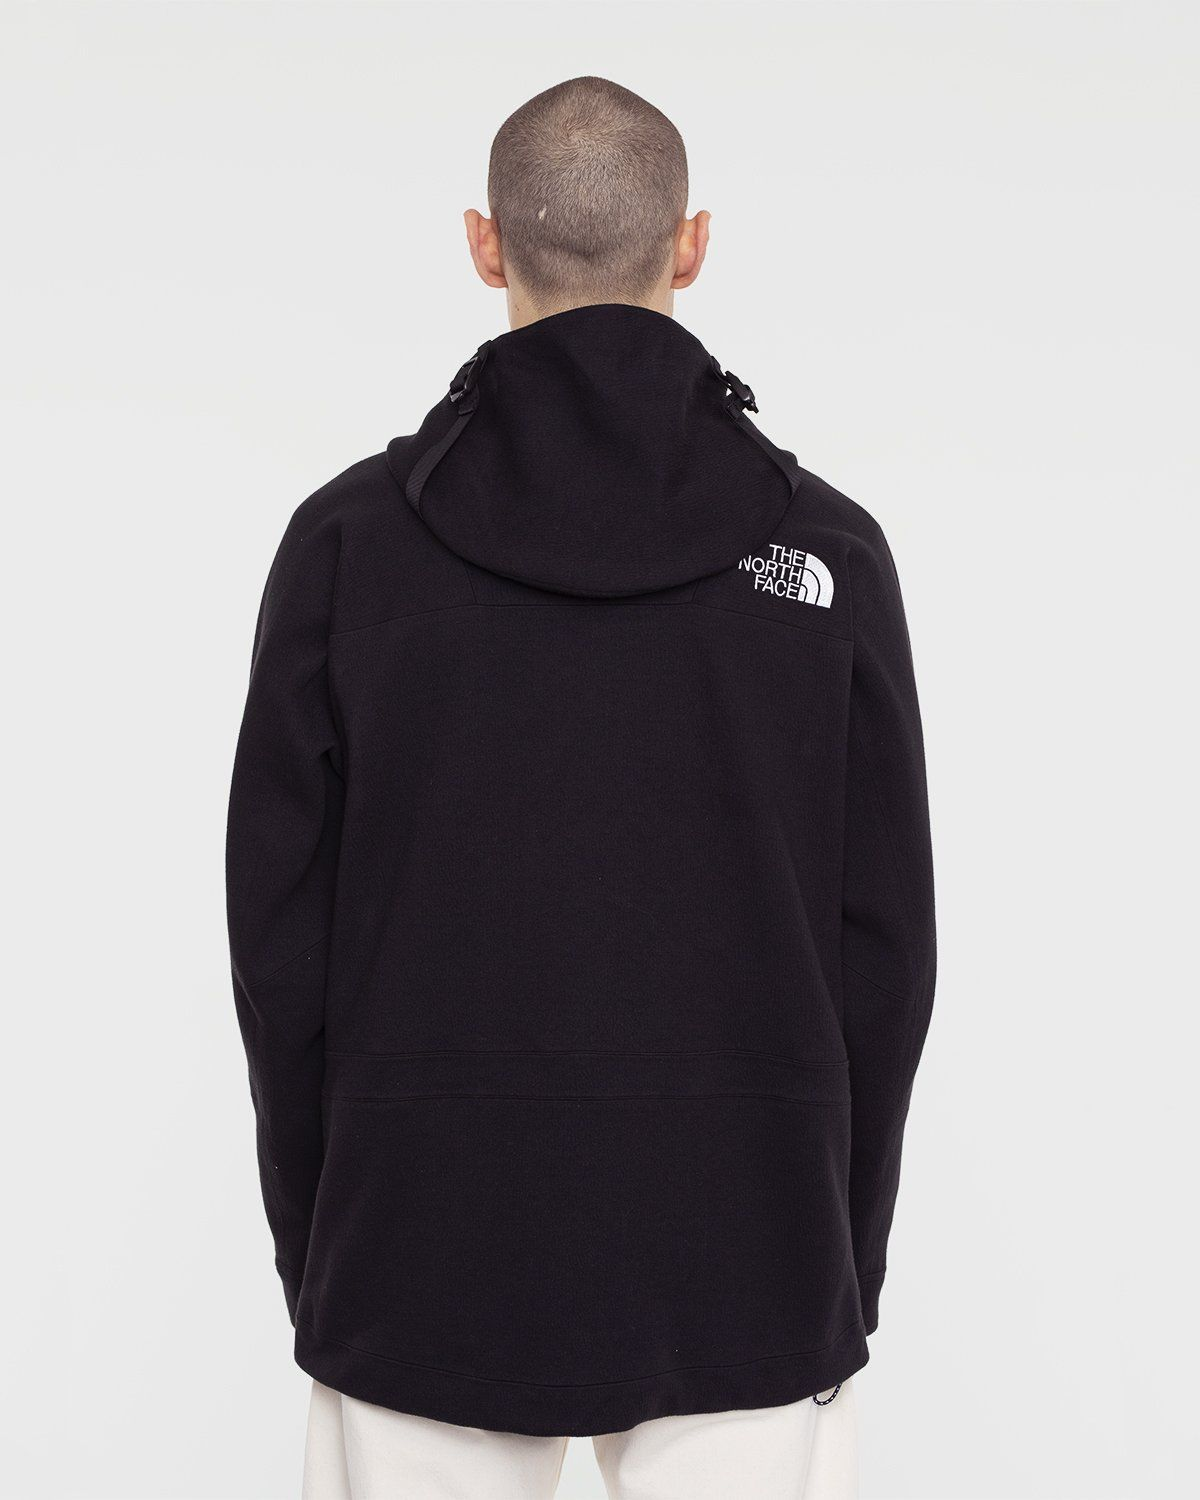 The North Face Black Series — Spacer Knit Mountain Light Jacket Black - Image 5